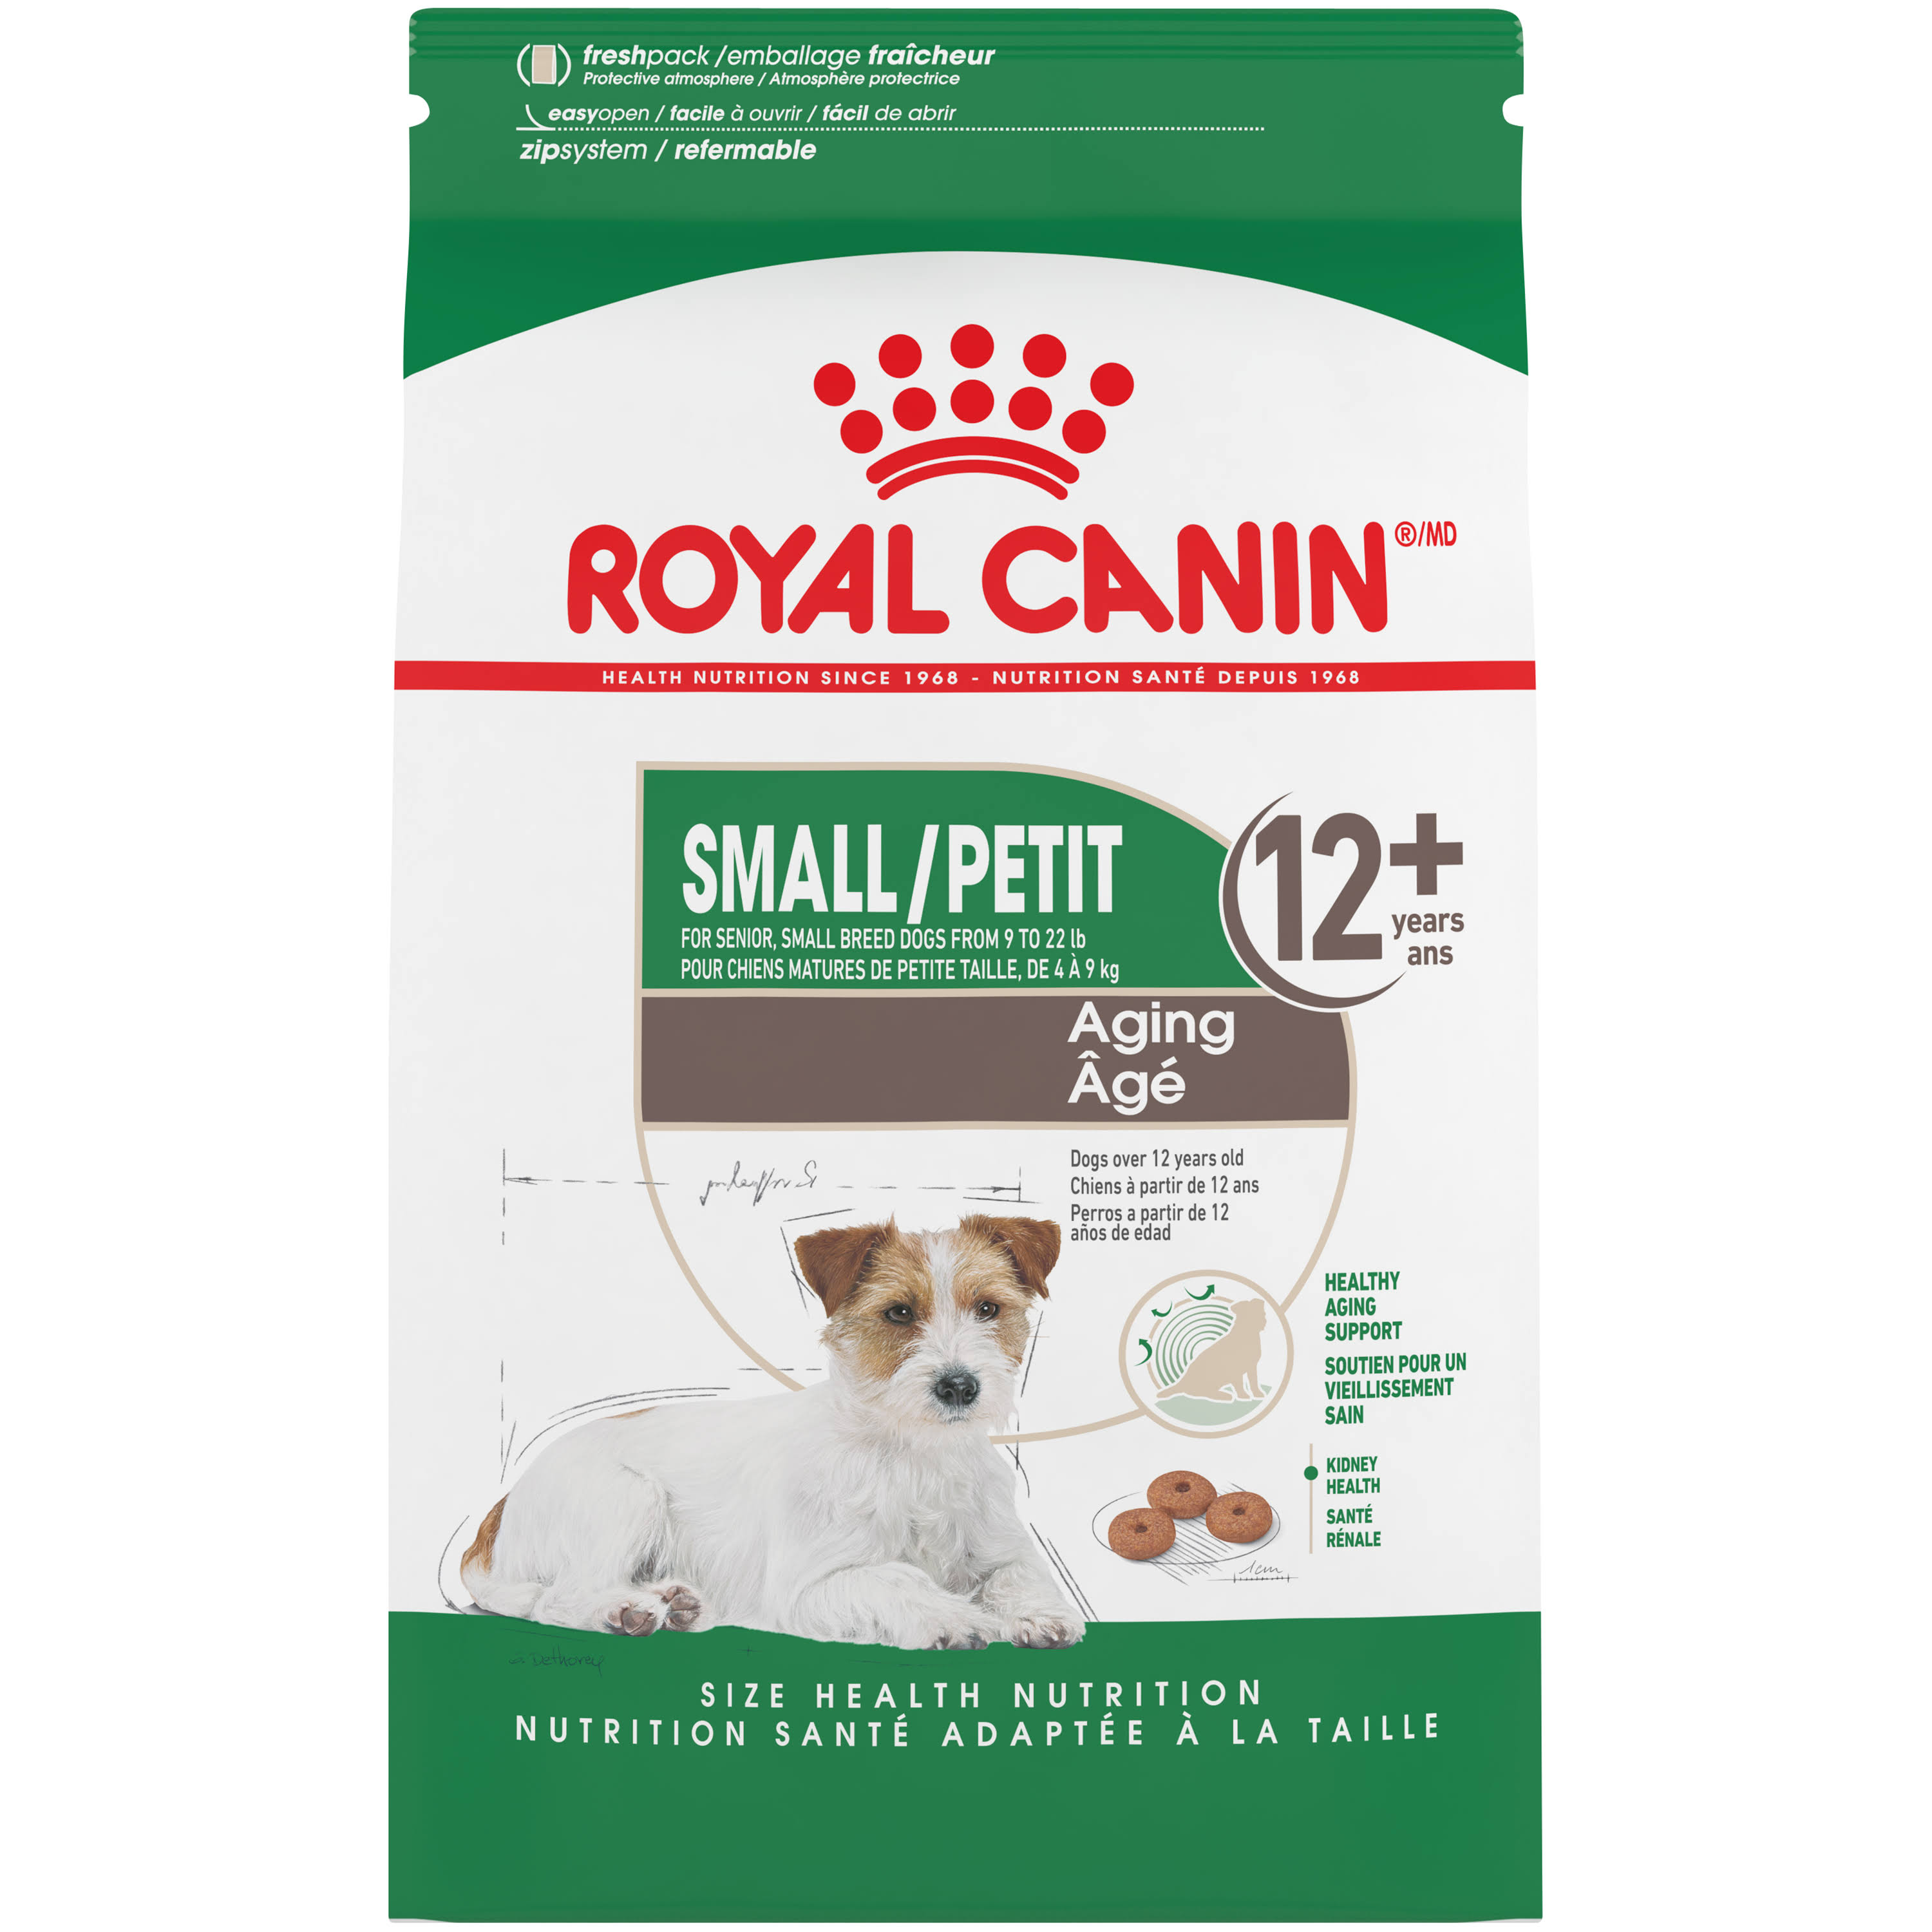 Royal Canin Mini Aging Dry Dog Food